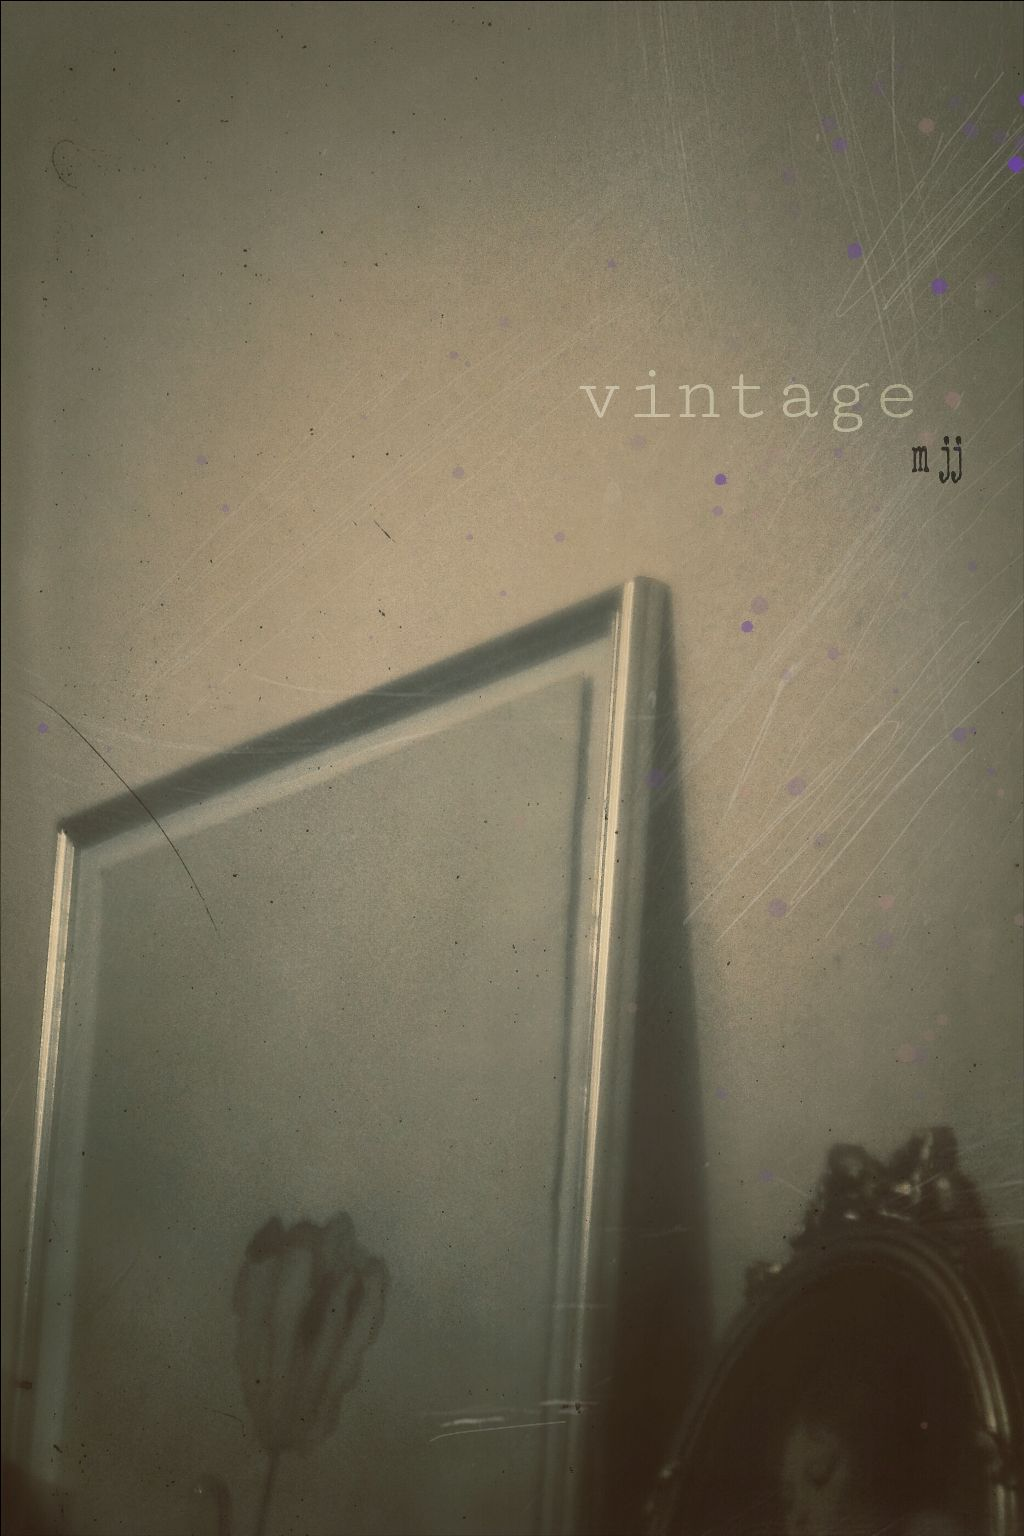 vintage perspective #vintage #retro #old #photography #texture #art everybody have a good day 🌷